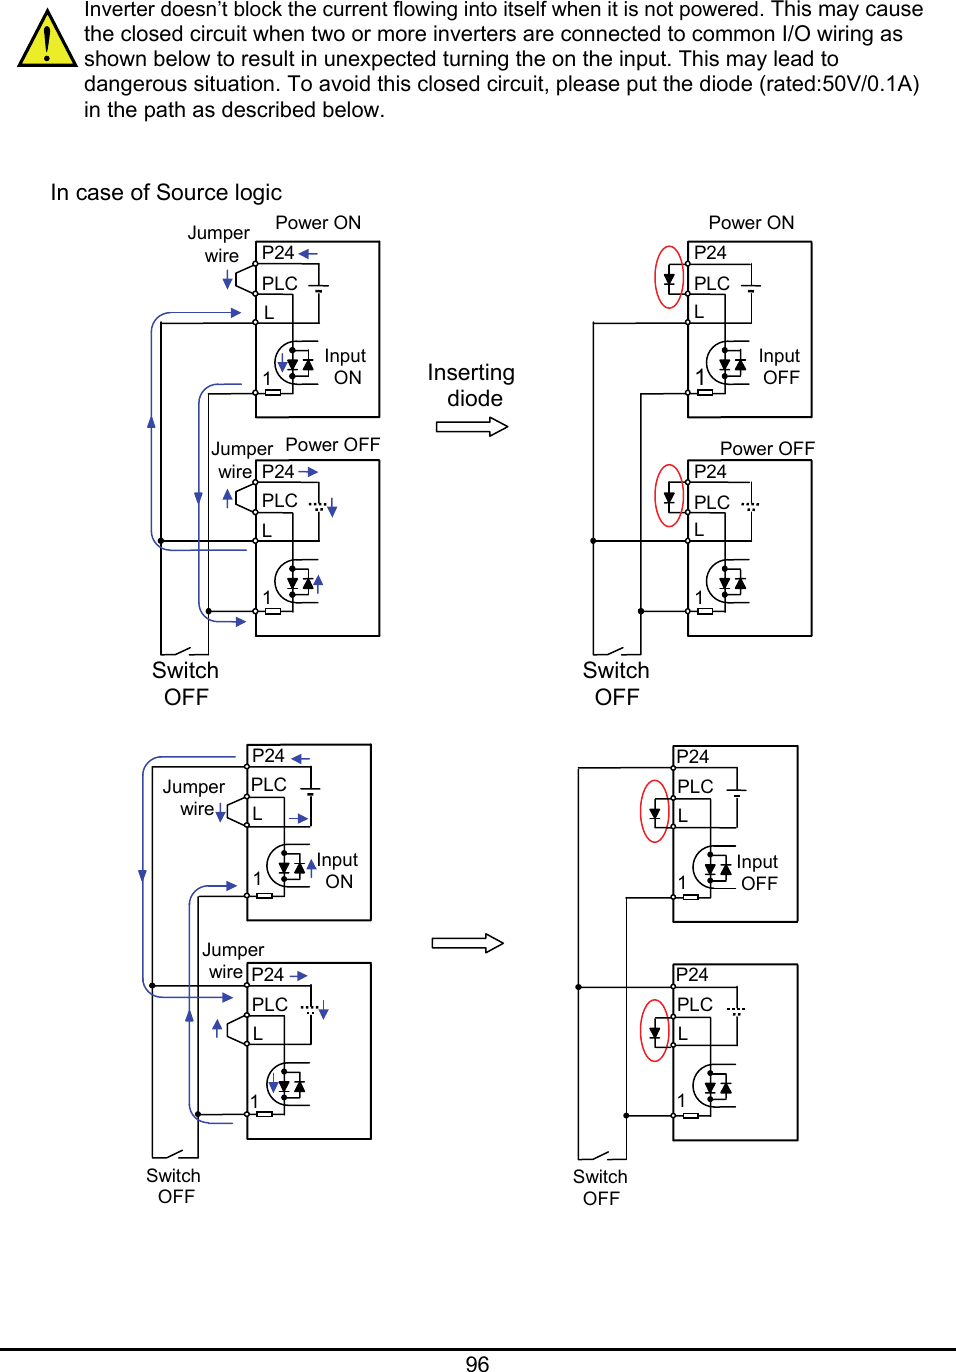 medium resolution of hitachi welding system series inverter users manual fig 1a schematic diagram of the power inverter use awg10 wire for